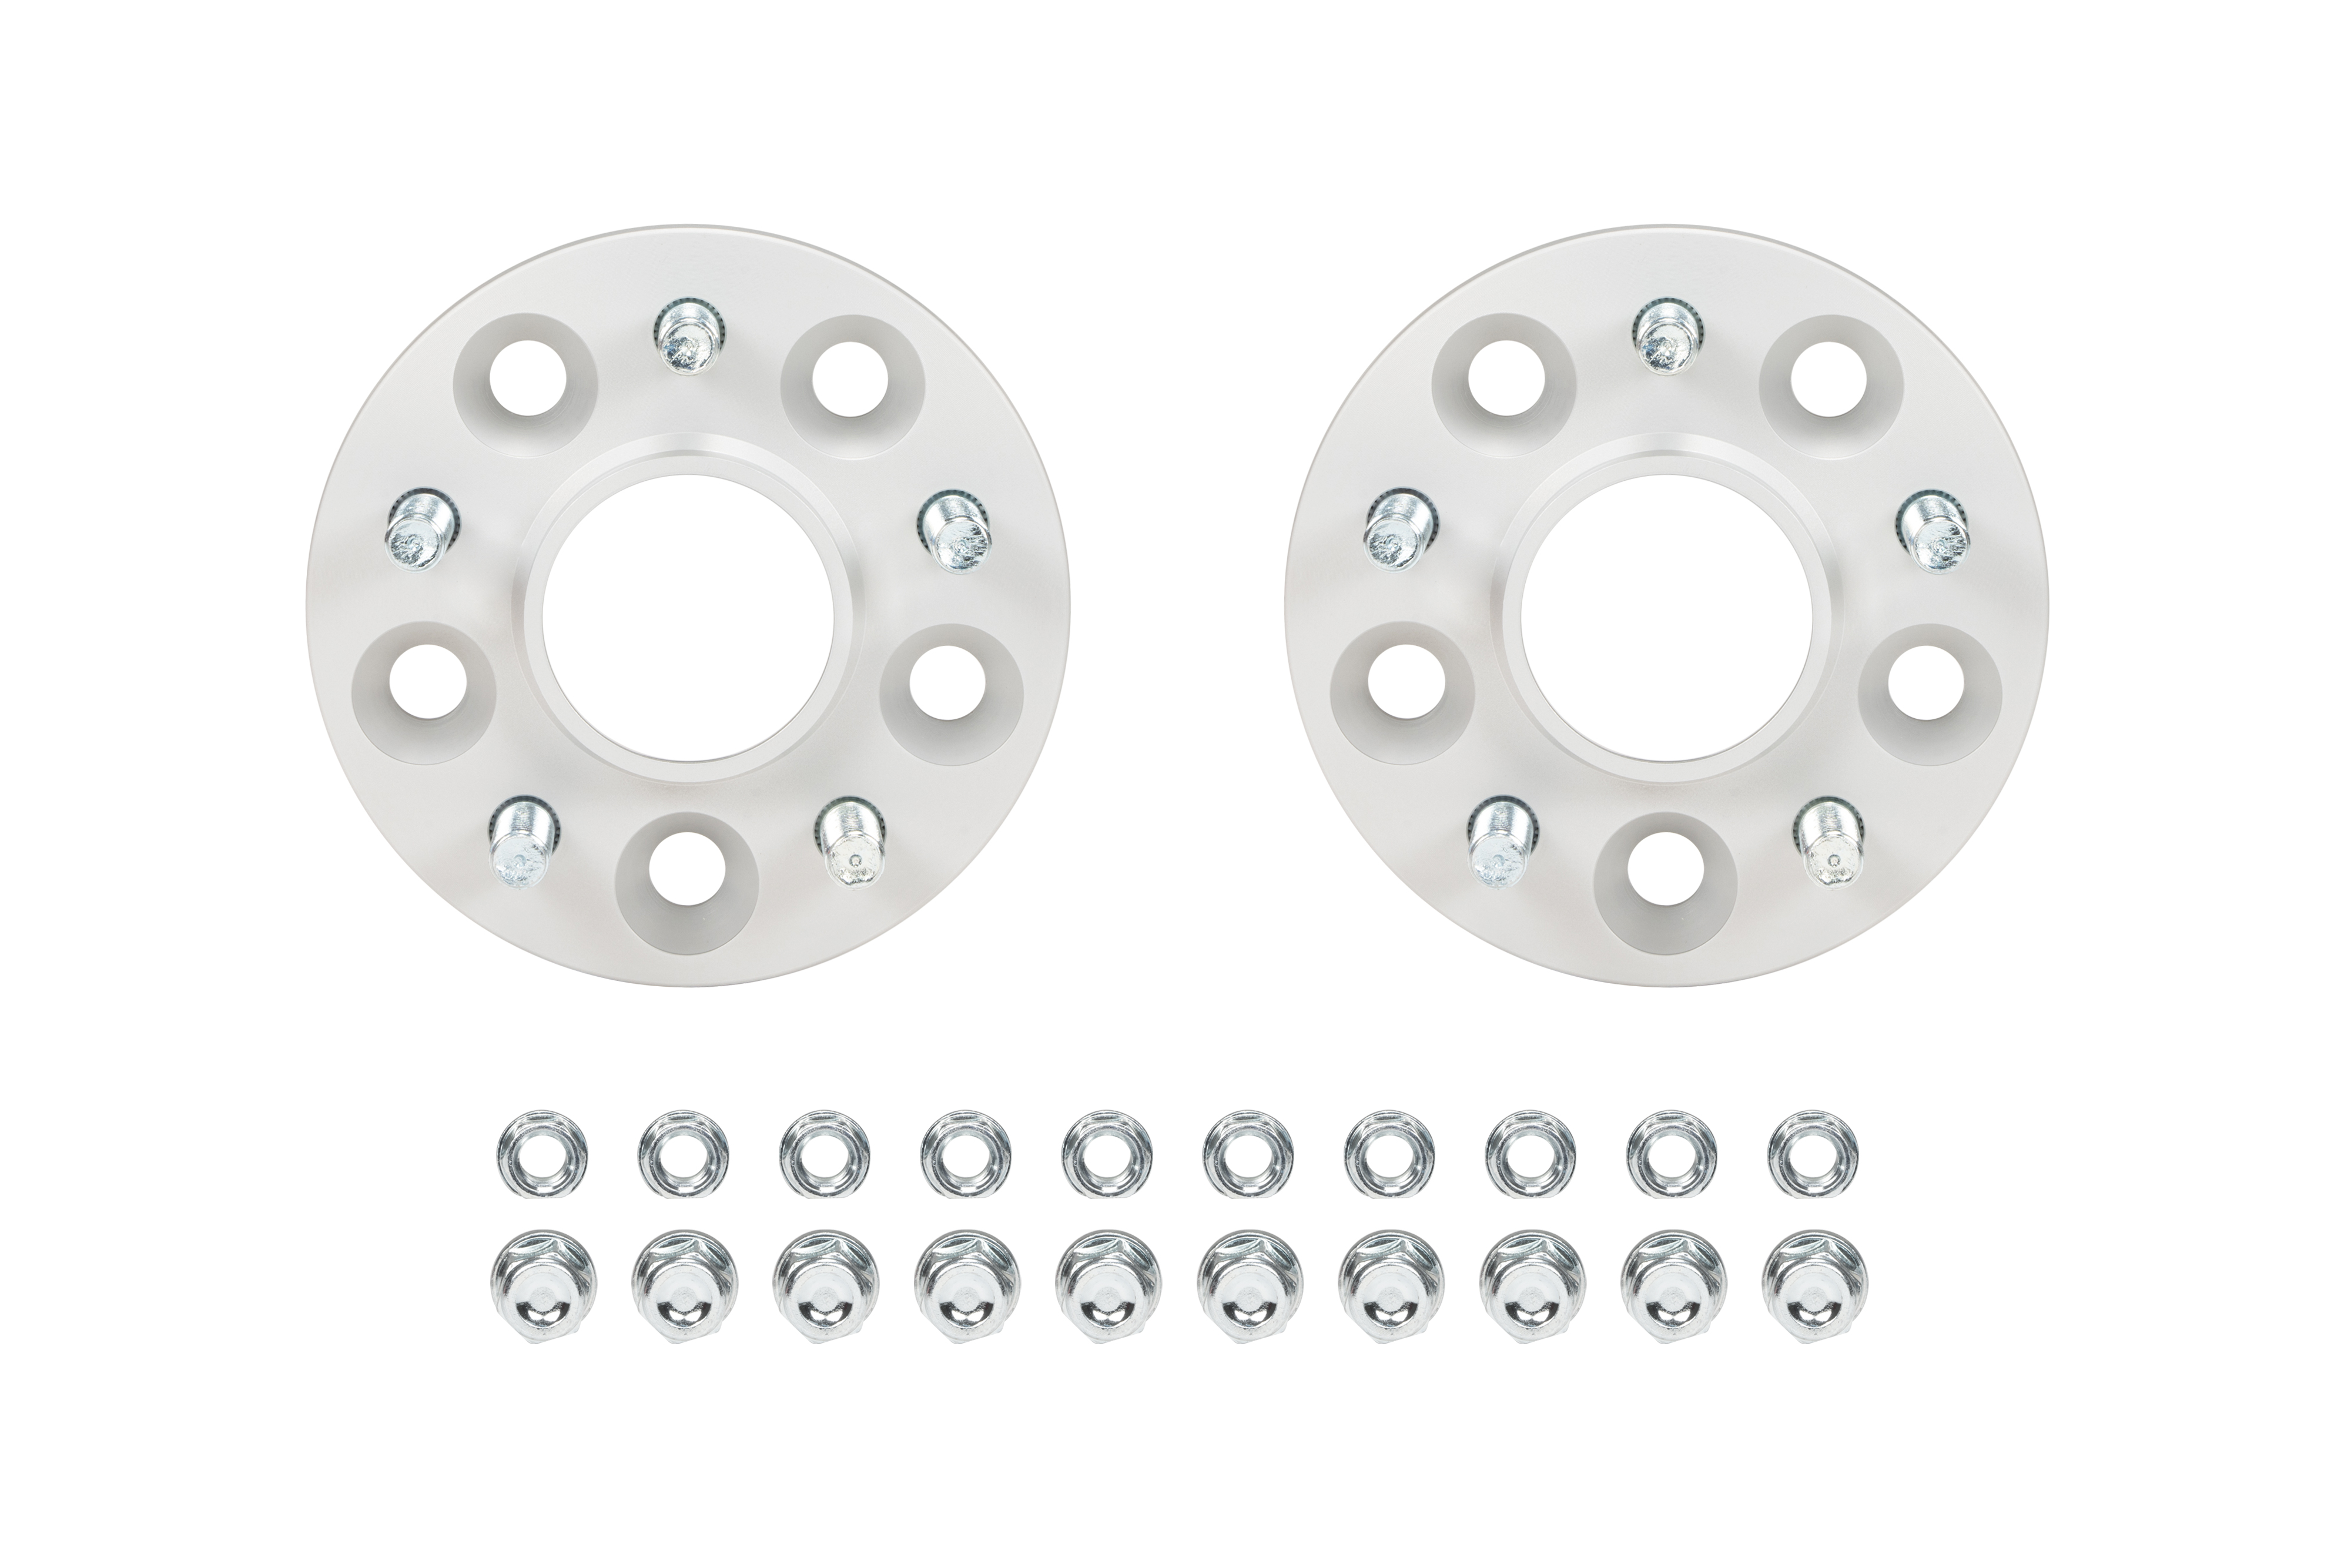 2018-2021 Toyota Camry Wheel Spacers